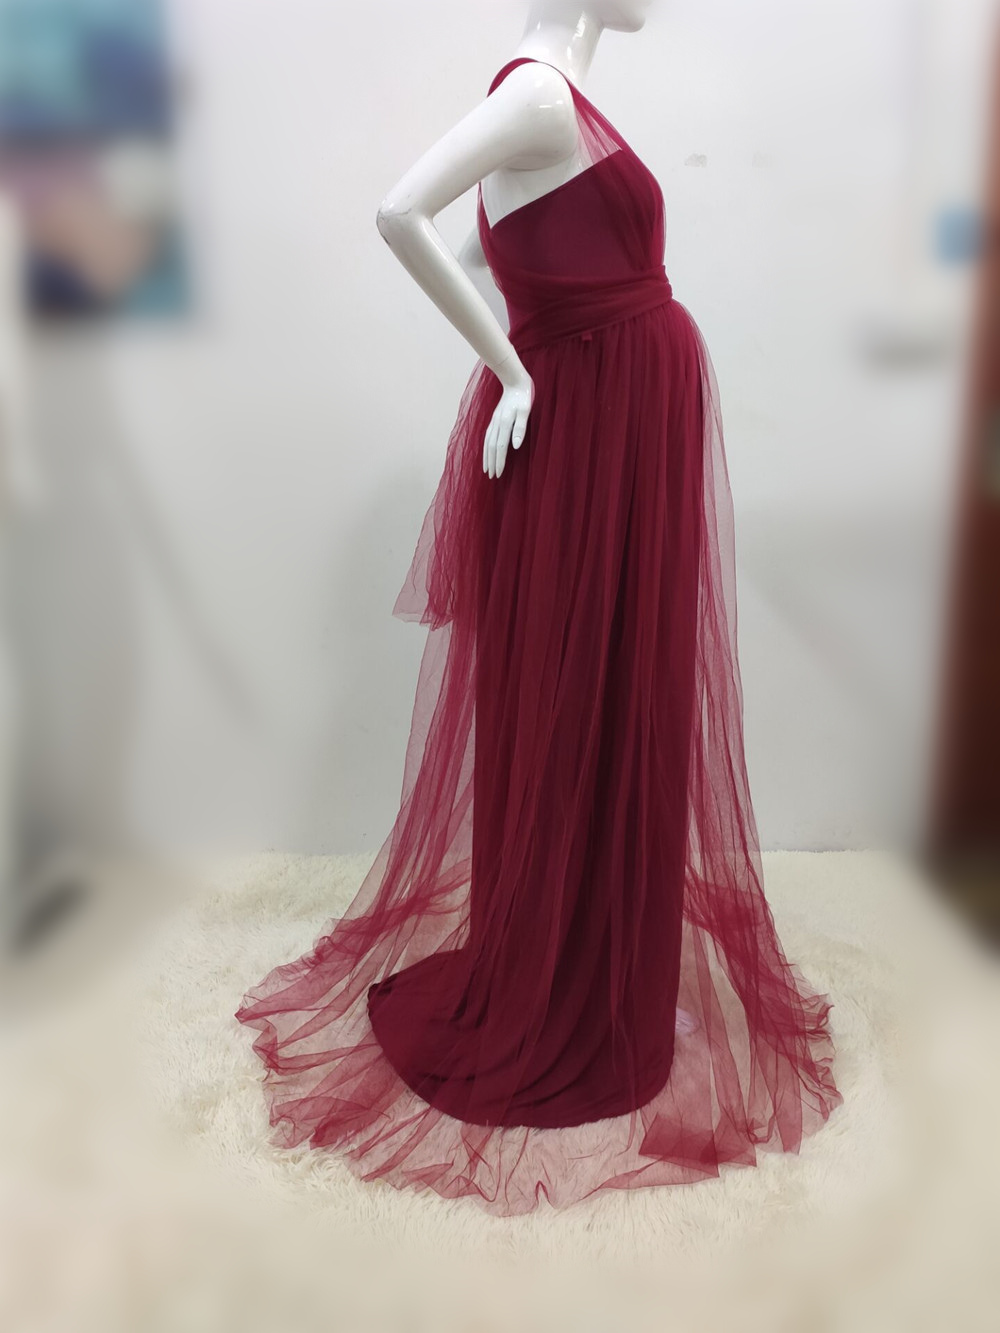 Tulle Sexy Maternity Dresses Photography Props Long Fancy Pregnancy Dress Mesh Pregnant Women Maxi Gown Clothes For Photo Shoots (19)